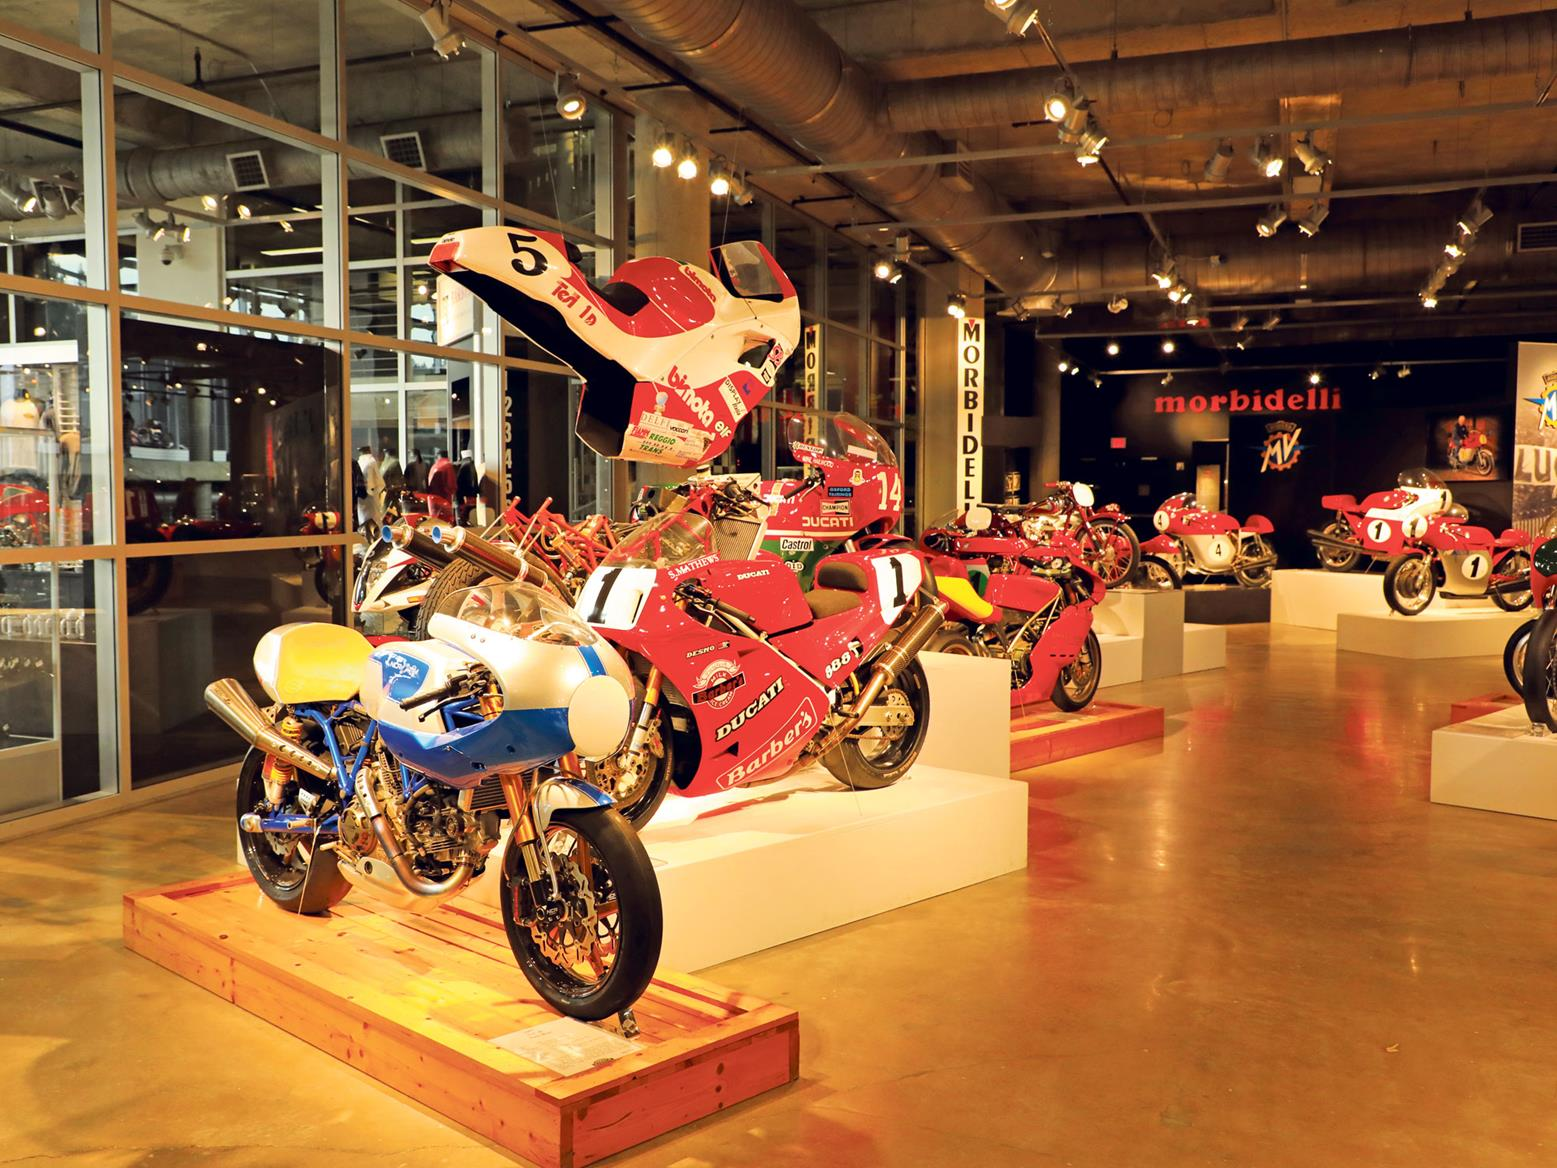 An ultra-rare NCR 'New Blue' sits alongside a Ducati 888 Corse and a Bimota Tesi 1D superbike with its bodywork hung like an exploded diagram. Next is Hailwood's 1979 TT NCR, a Ducati Supermono and a smorgasbord of racing MV Agustas...